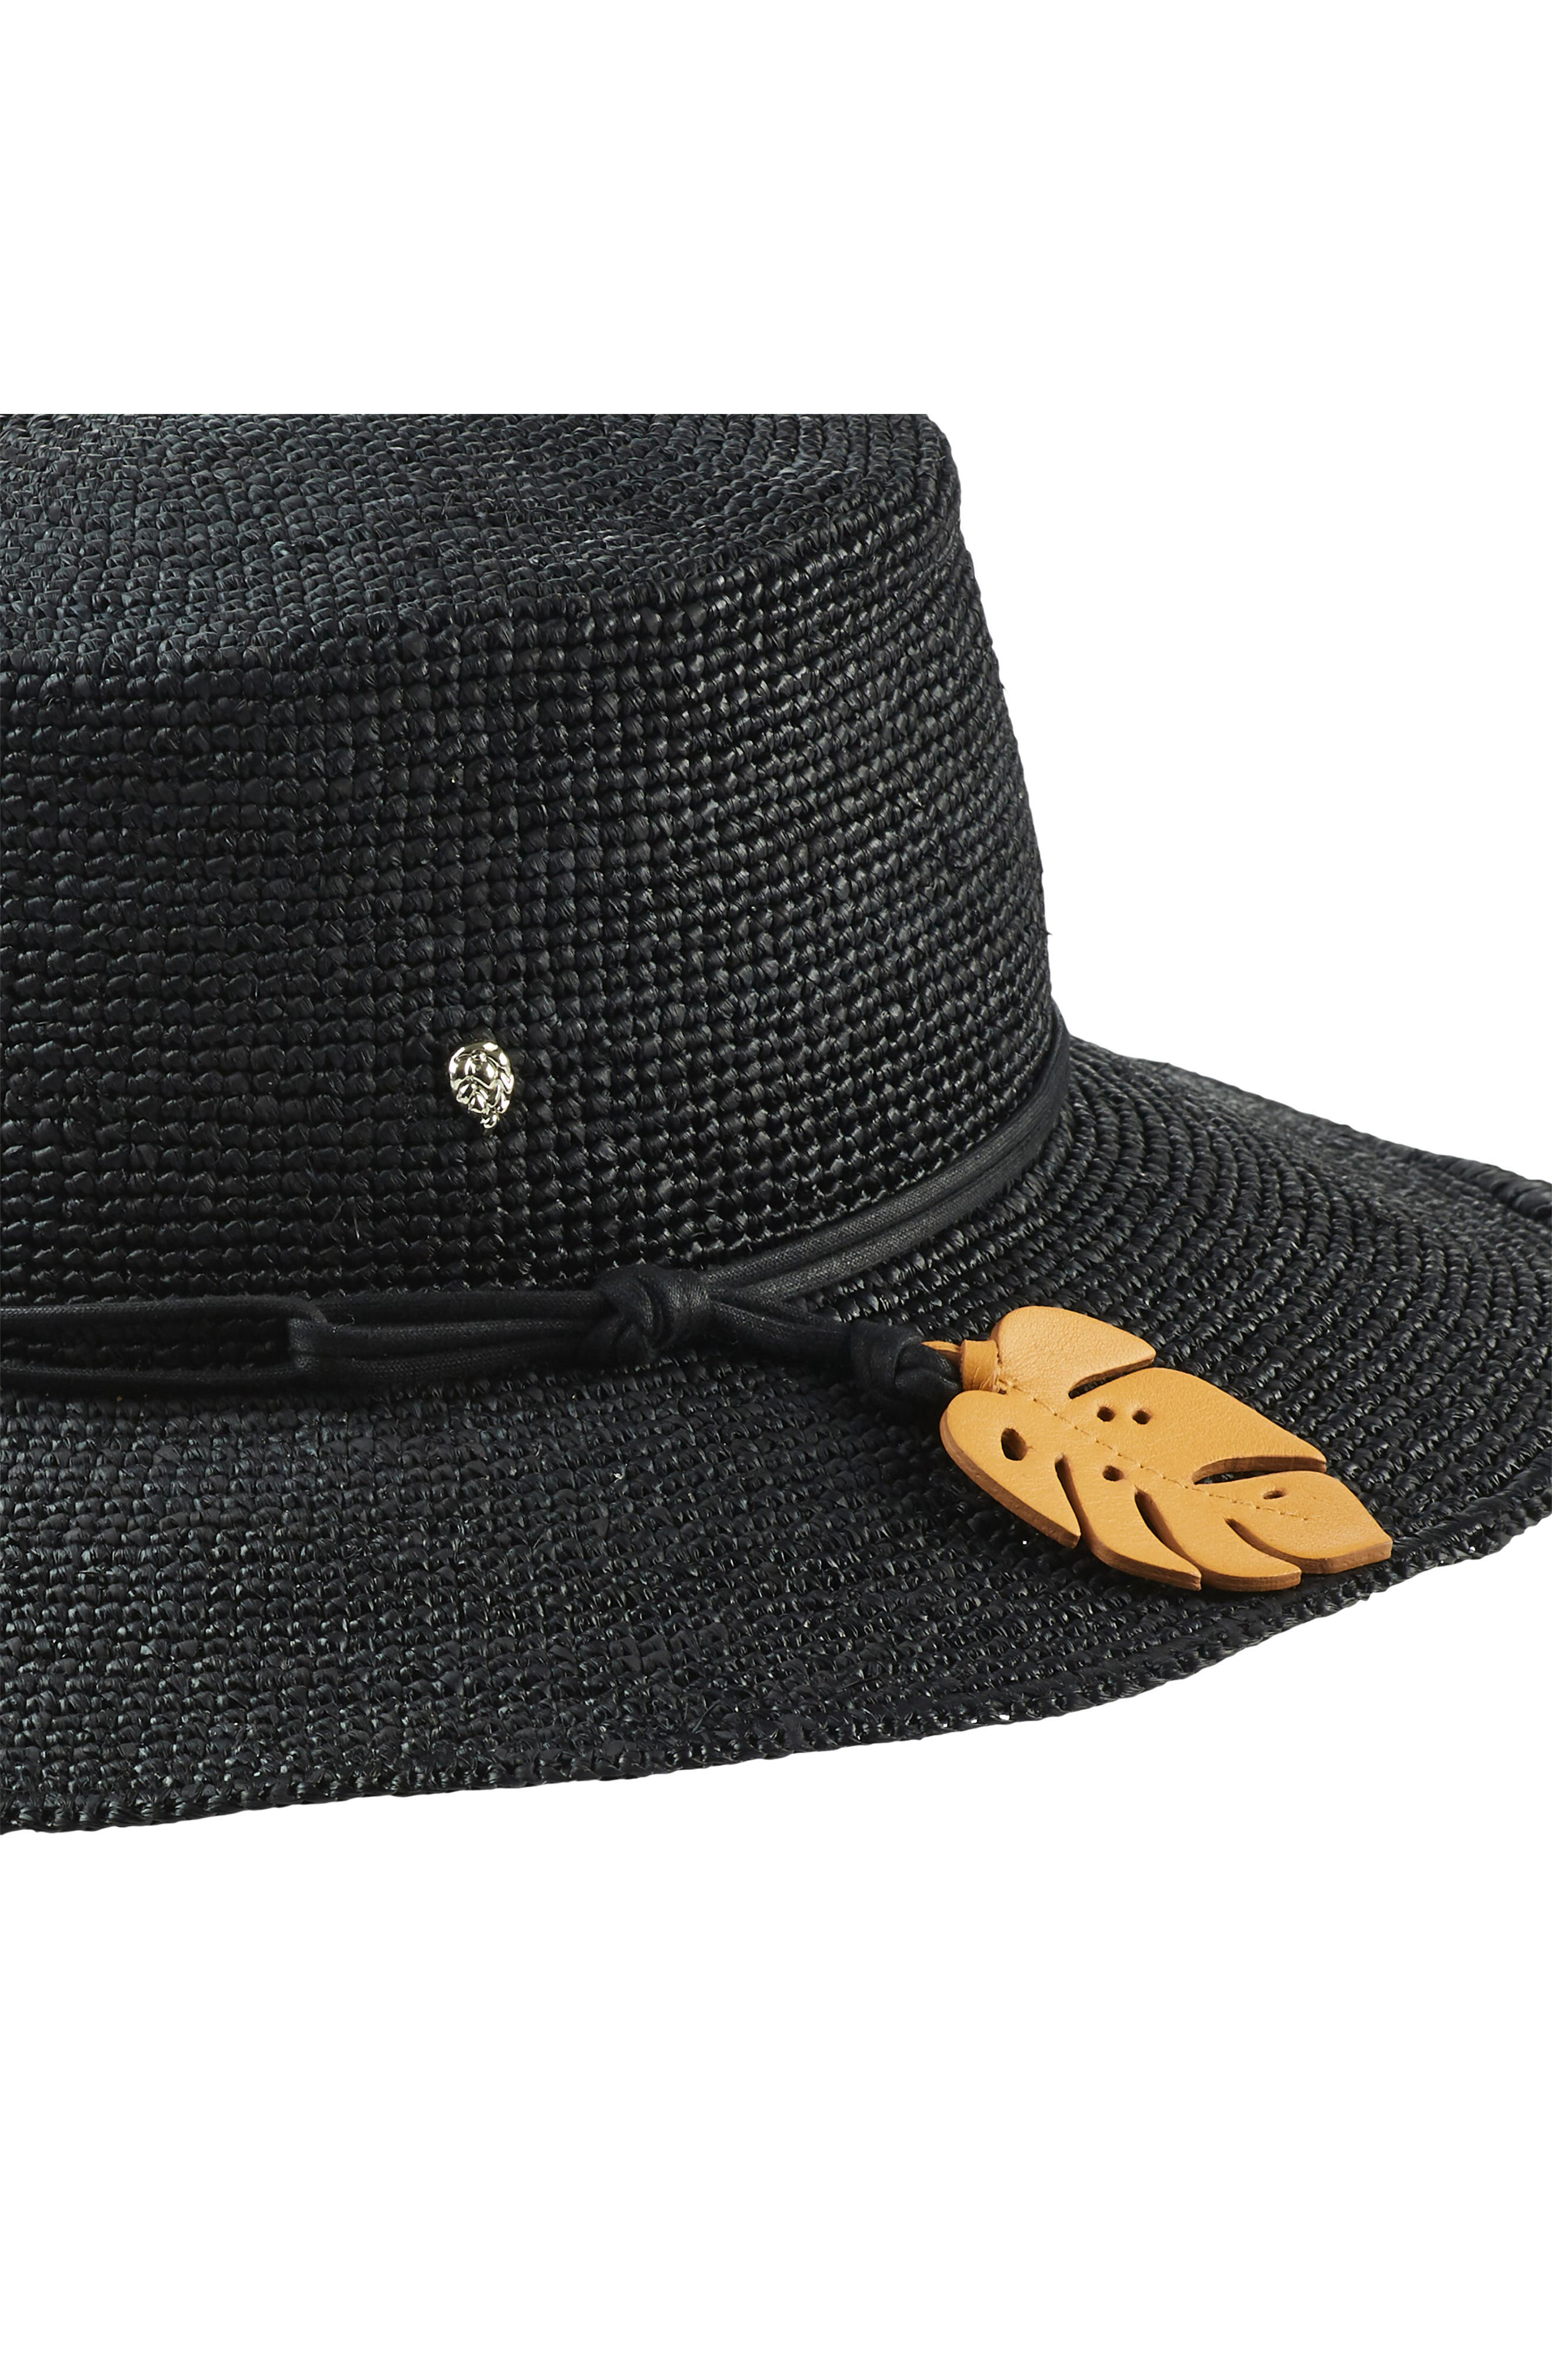 Tapered Brim Raffia Hat,                             Alternate thumbnail 3, color,                             CHARCOAL/ CONGO YELLOW